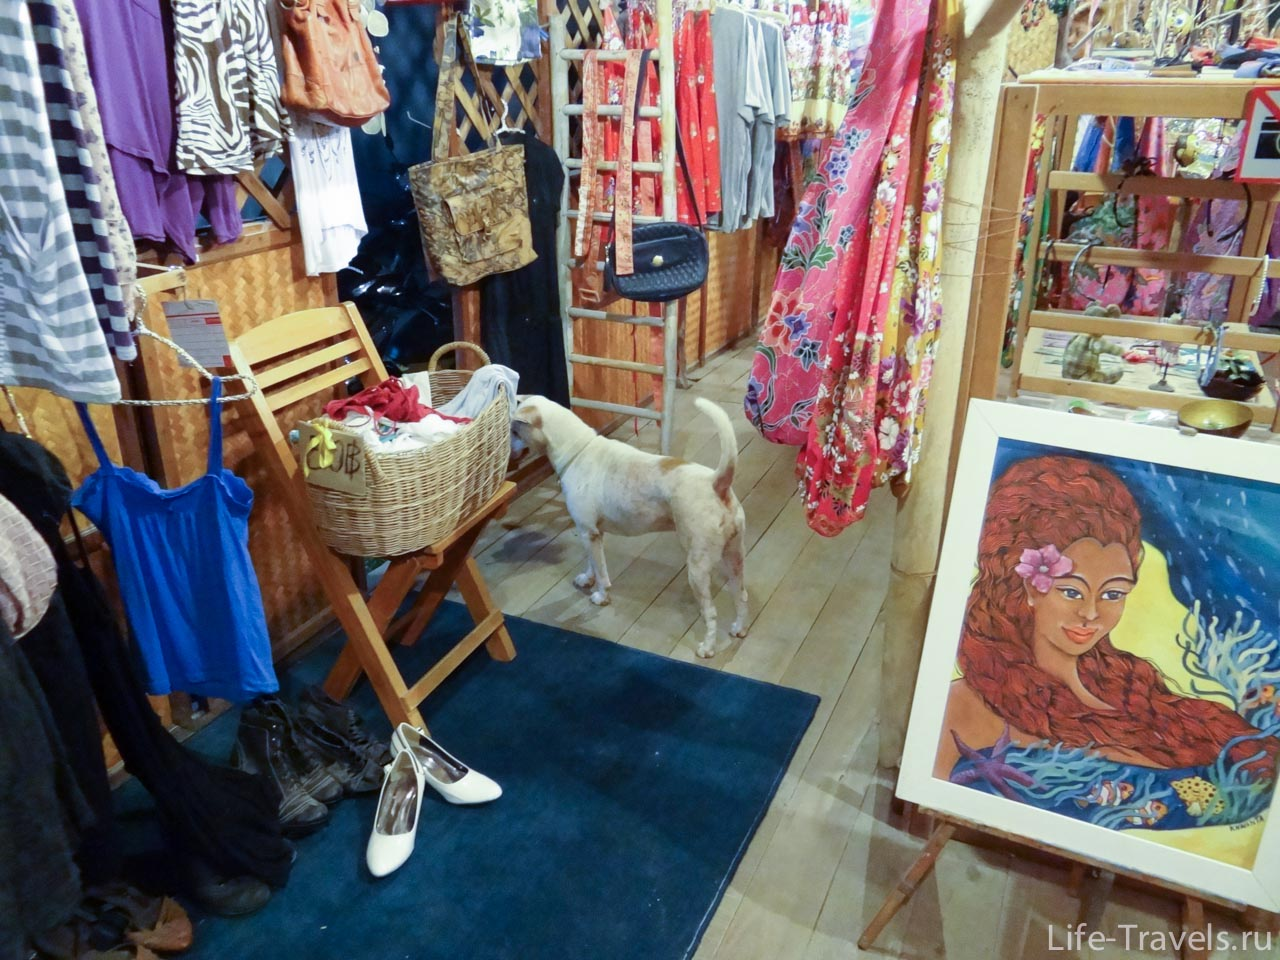 Dogs in the store